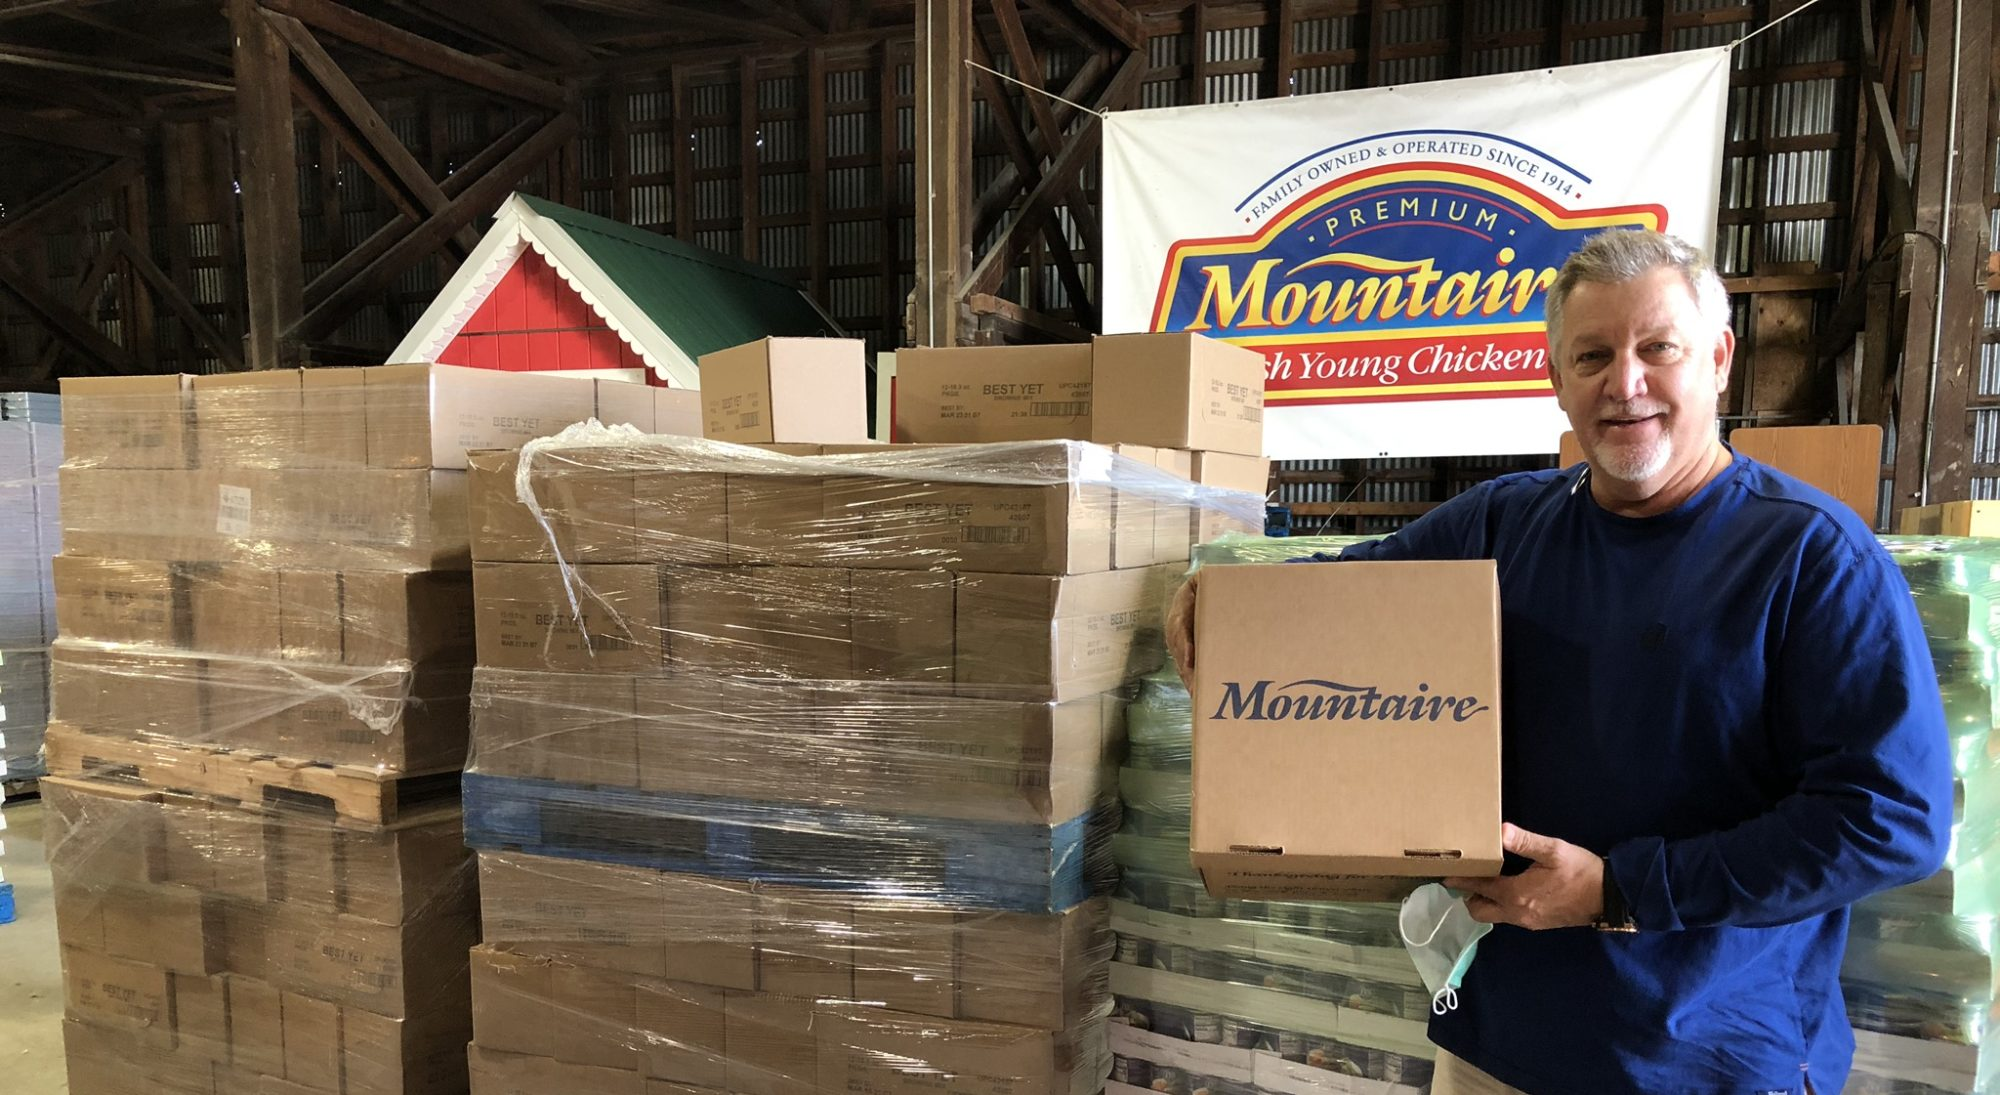 Tim Dukes and Laurel Ministerial Alliance help donate 2,500 meals